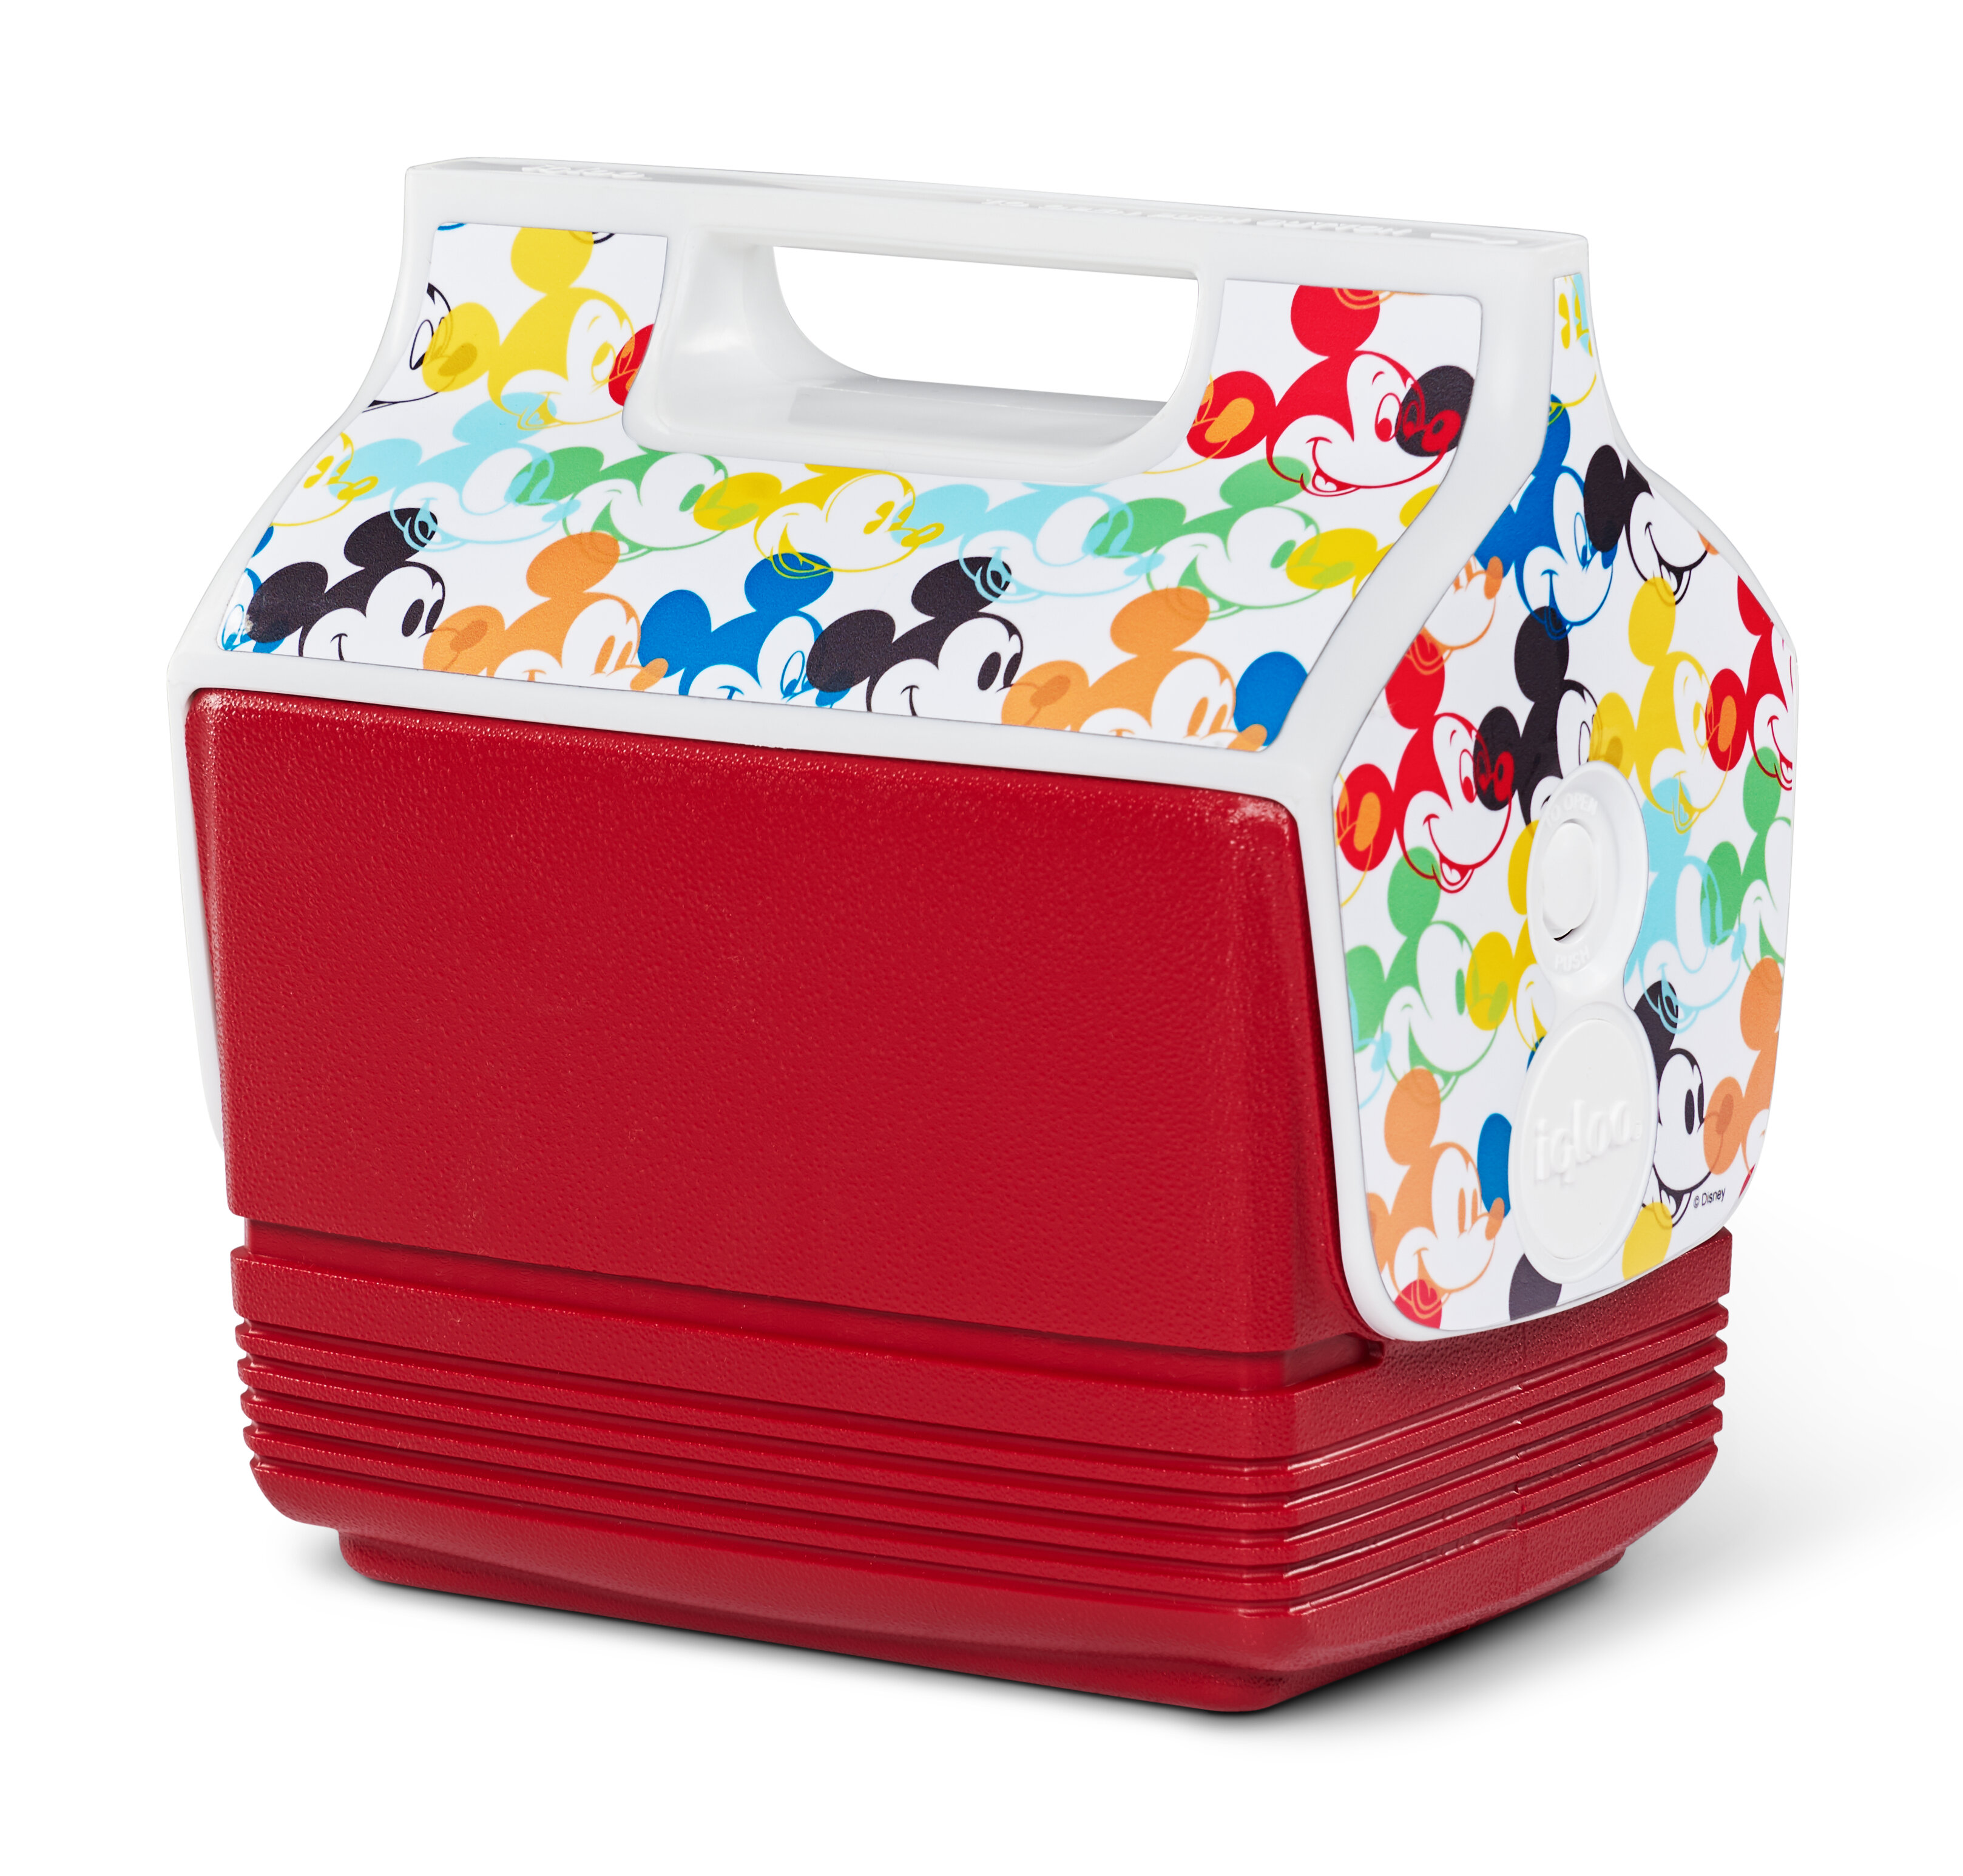 Igloo 4 Qt Igloo Mickey Mouse Playmate Mini Special Edition Multicolor Cooler Reviews Wayfair